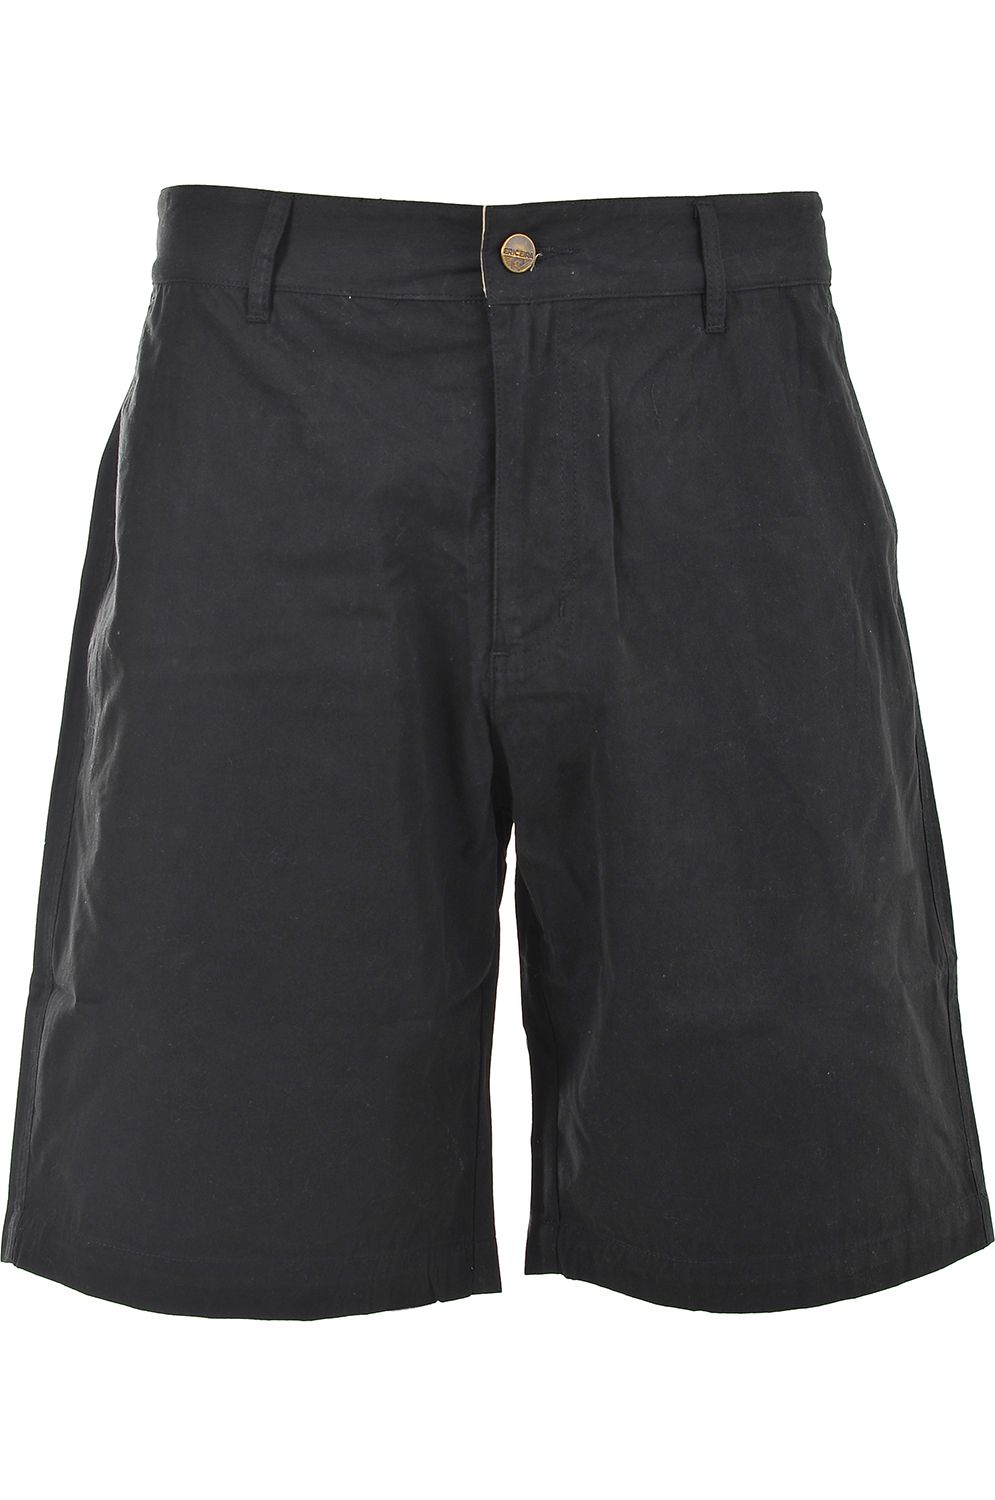 Walkshorts Ericeira Surf Skate THE MOVE II Black